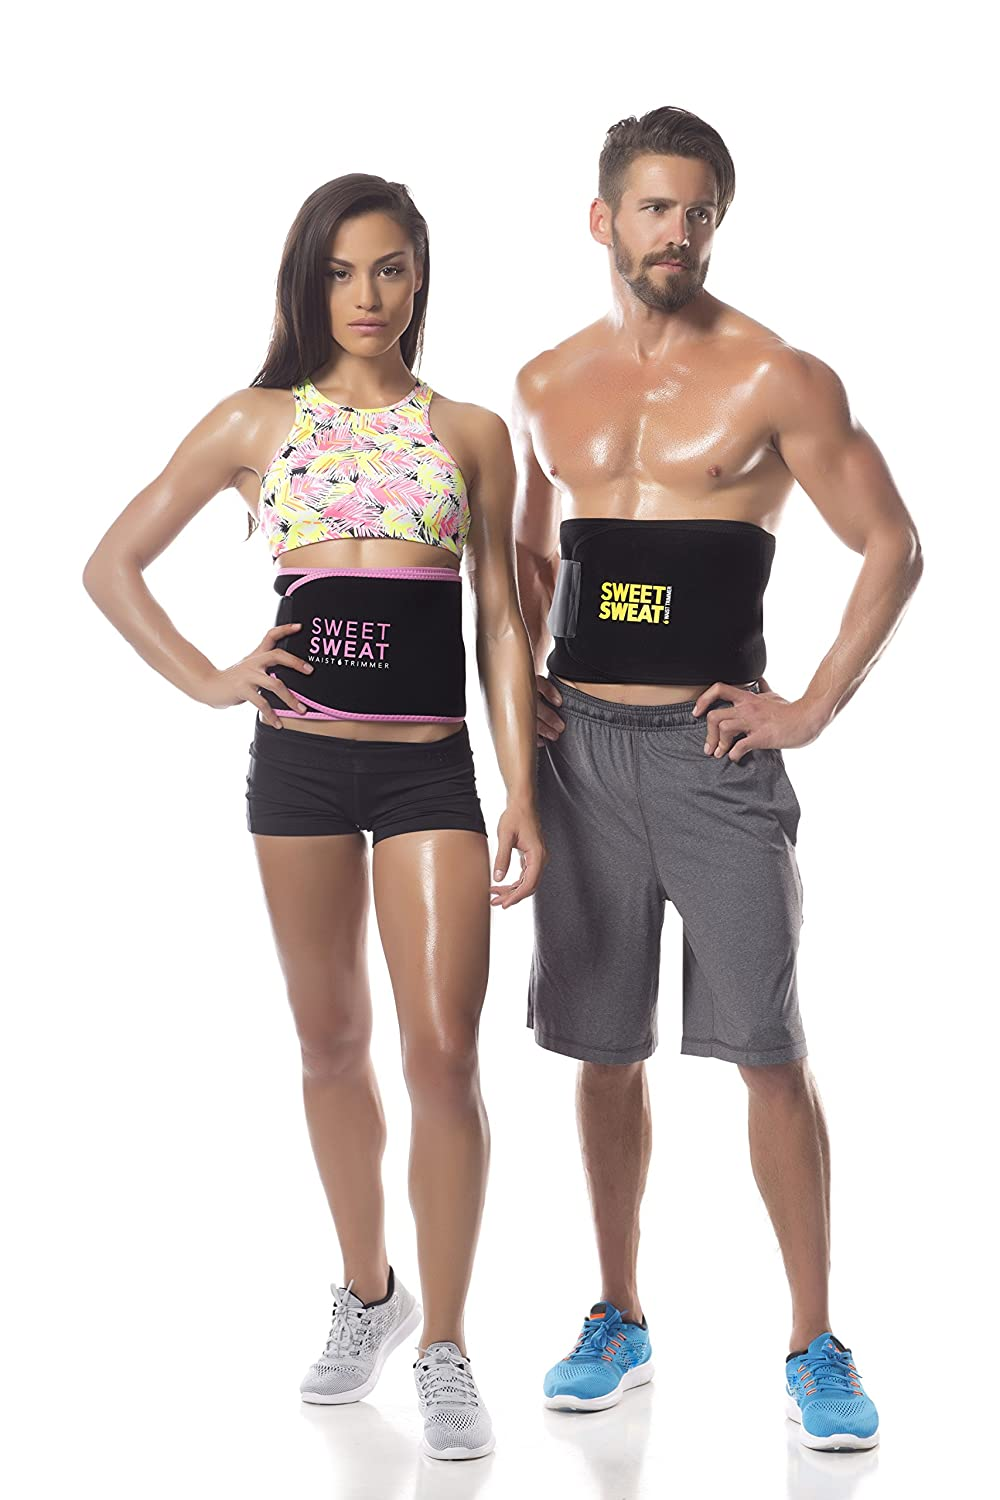 www.sweatsweet.com teen pic Amazon.com: Sweet Sweat Waist Trimmer with Sample of Sweet Sweat Workout  Enhancer gel, Medium: Health & Personal Care